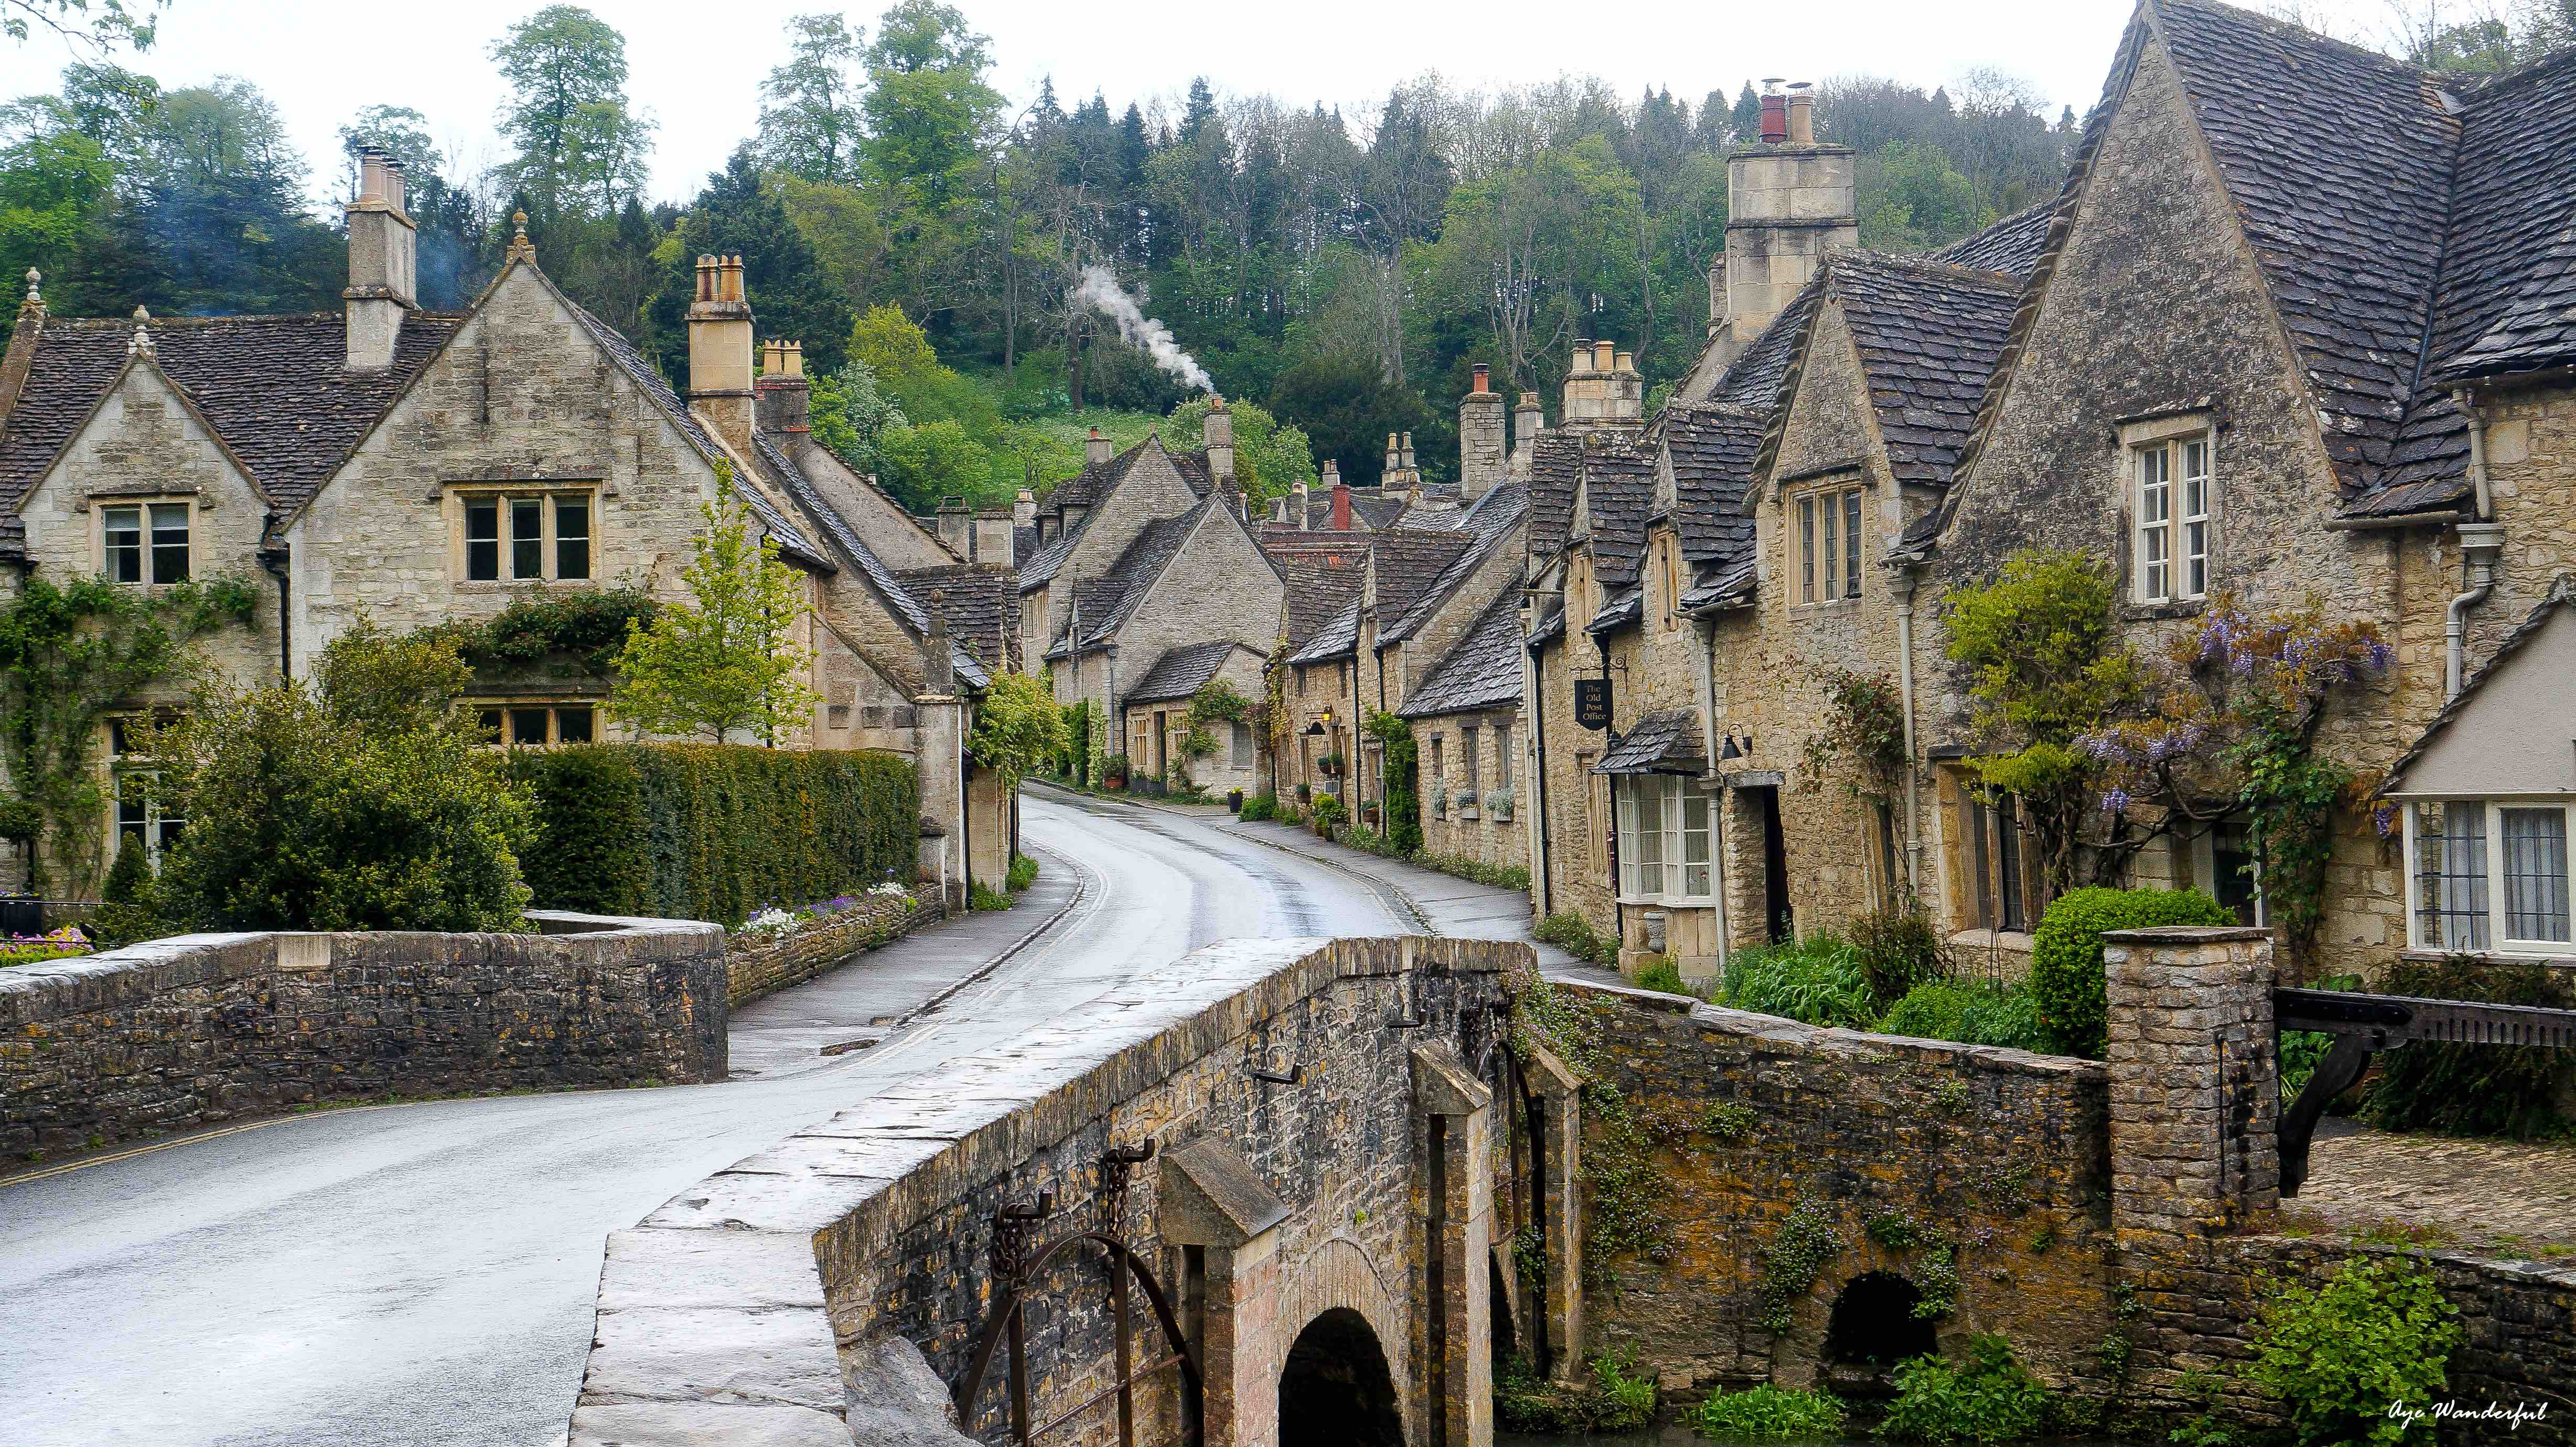 Castle Combe: Day trip from London to Cotswolds - Aye Wanderful